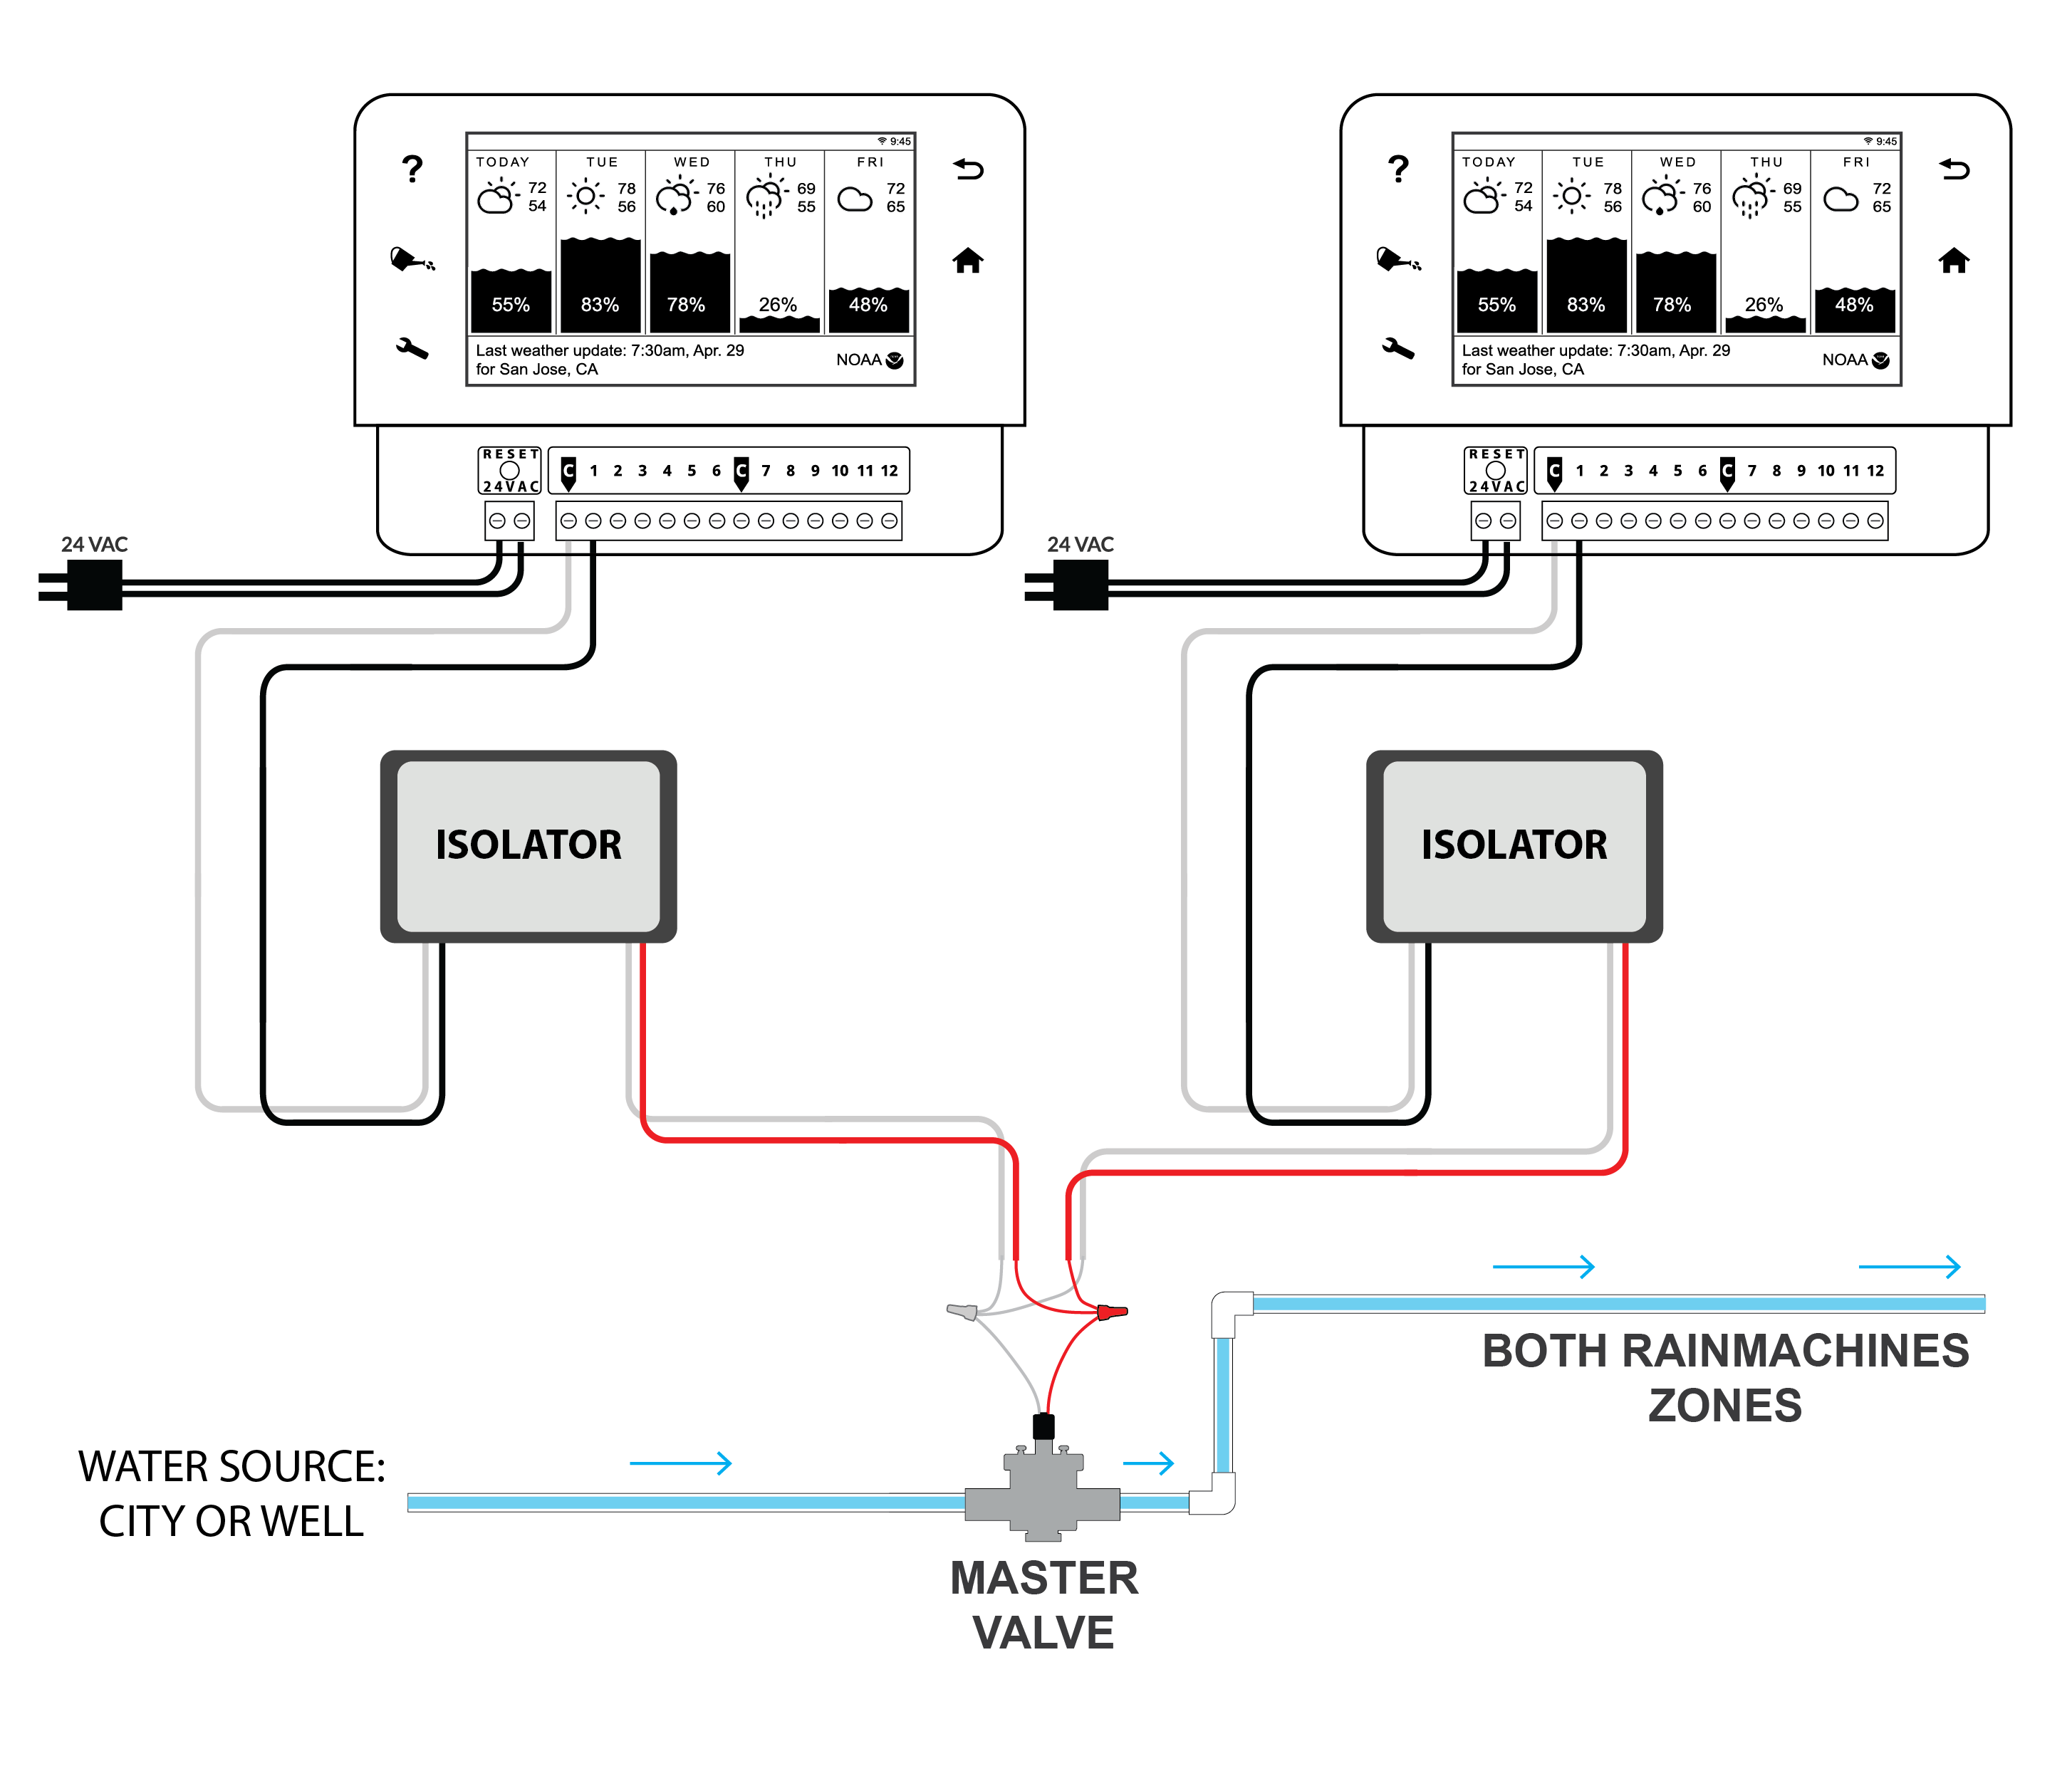 Wiring one master valve or pump to two controllers RainMachine – Isolator Wiring Diagram